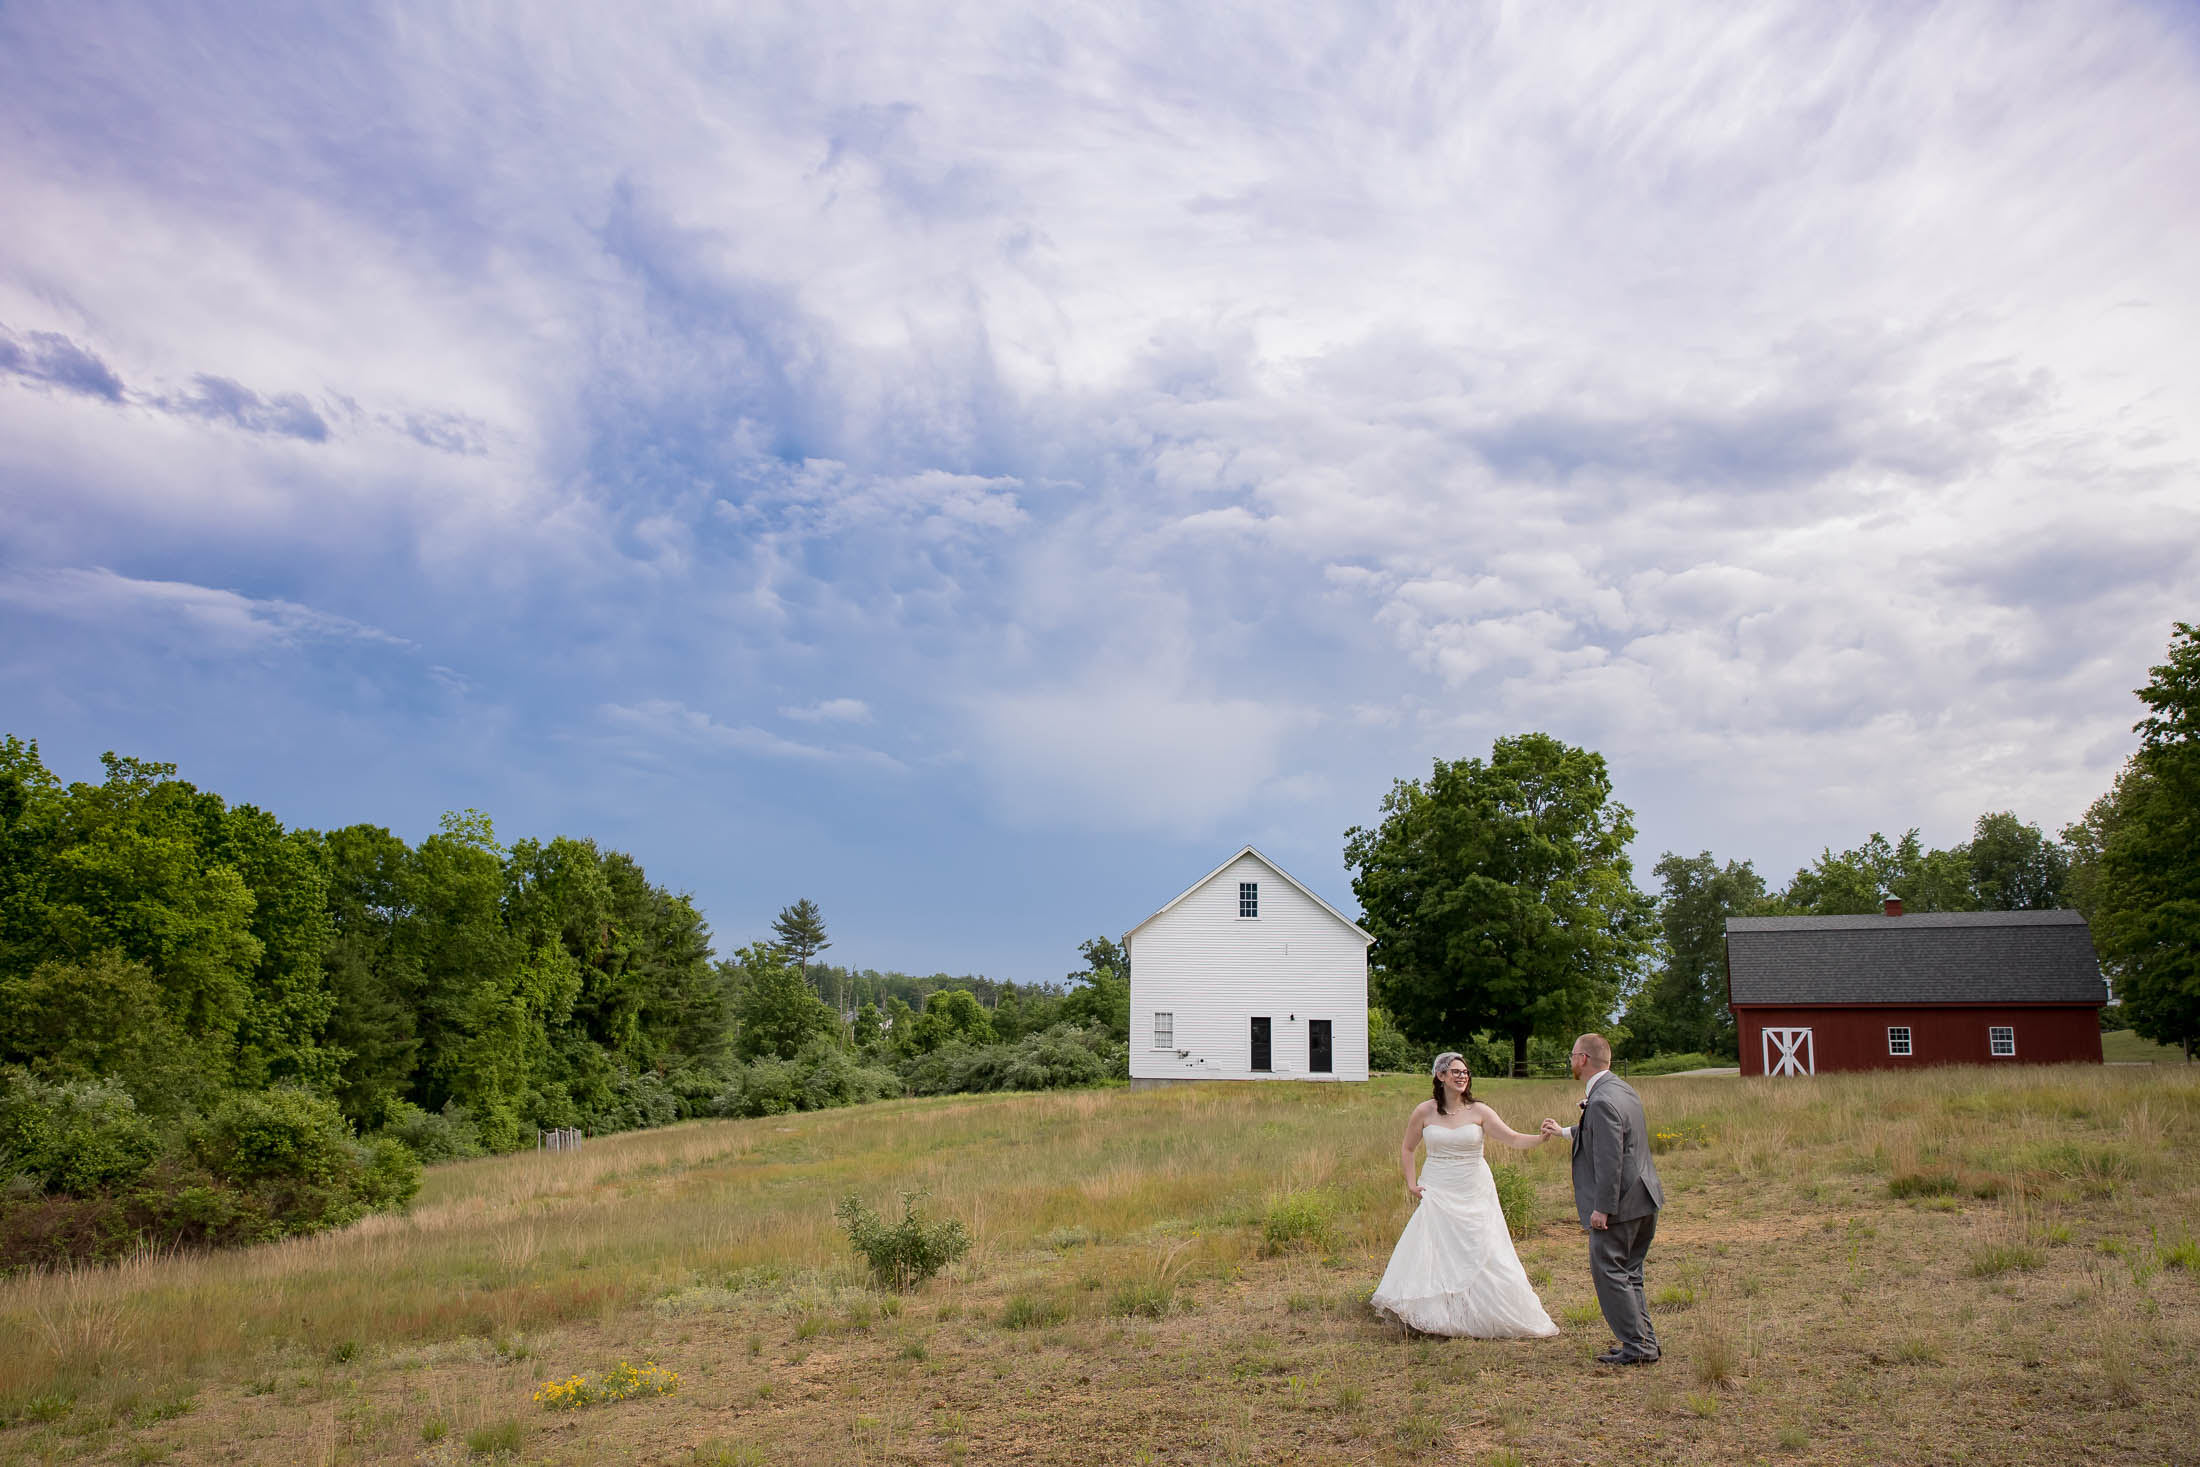 walk with me, couple photos, romantic, meadow, wedding, tracy jenkins photography, publick house, Massachusetts, new england,  photography